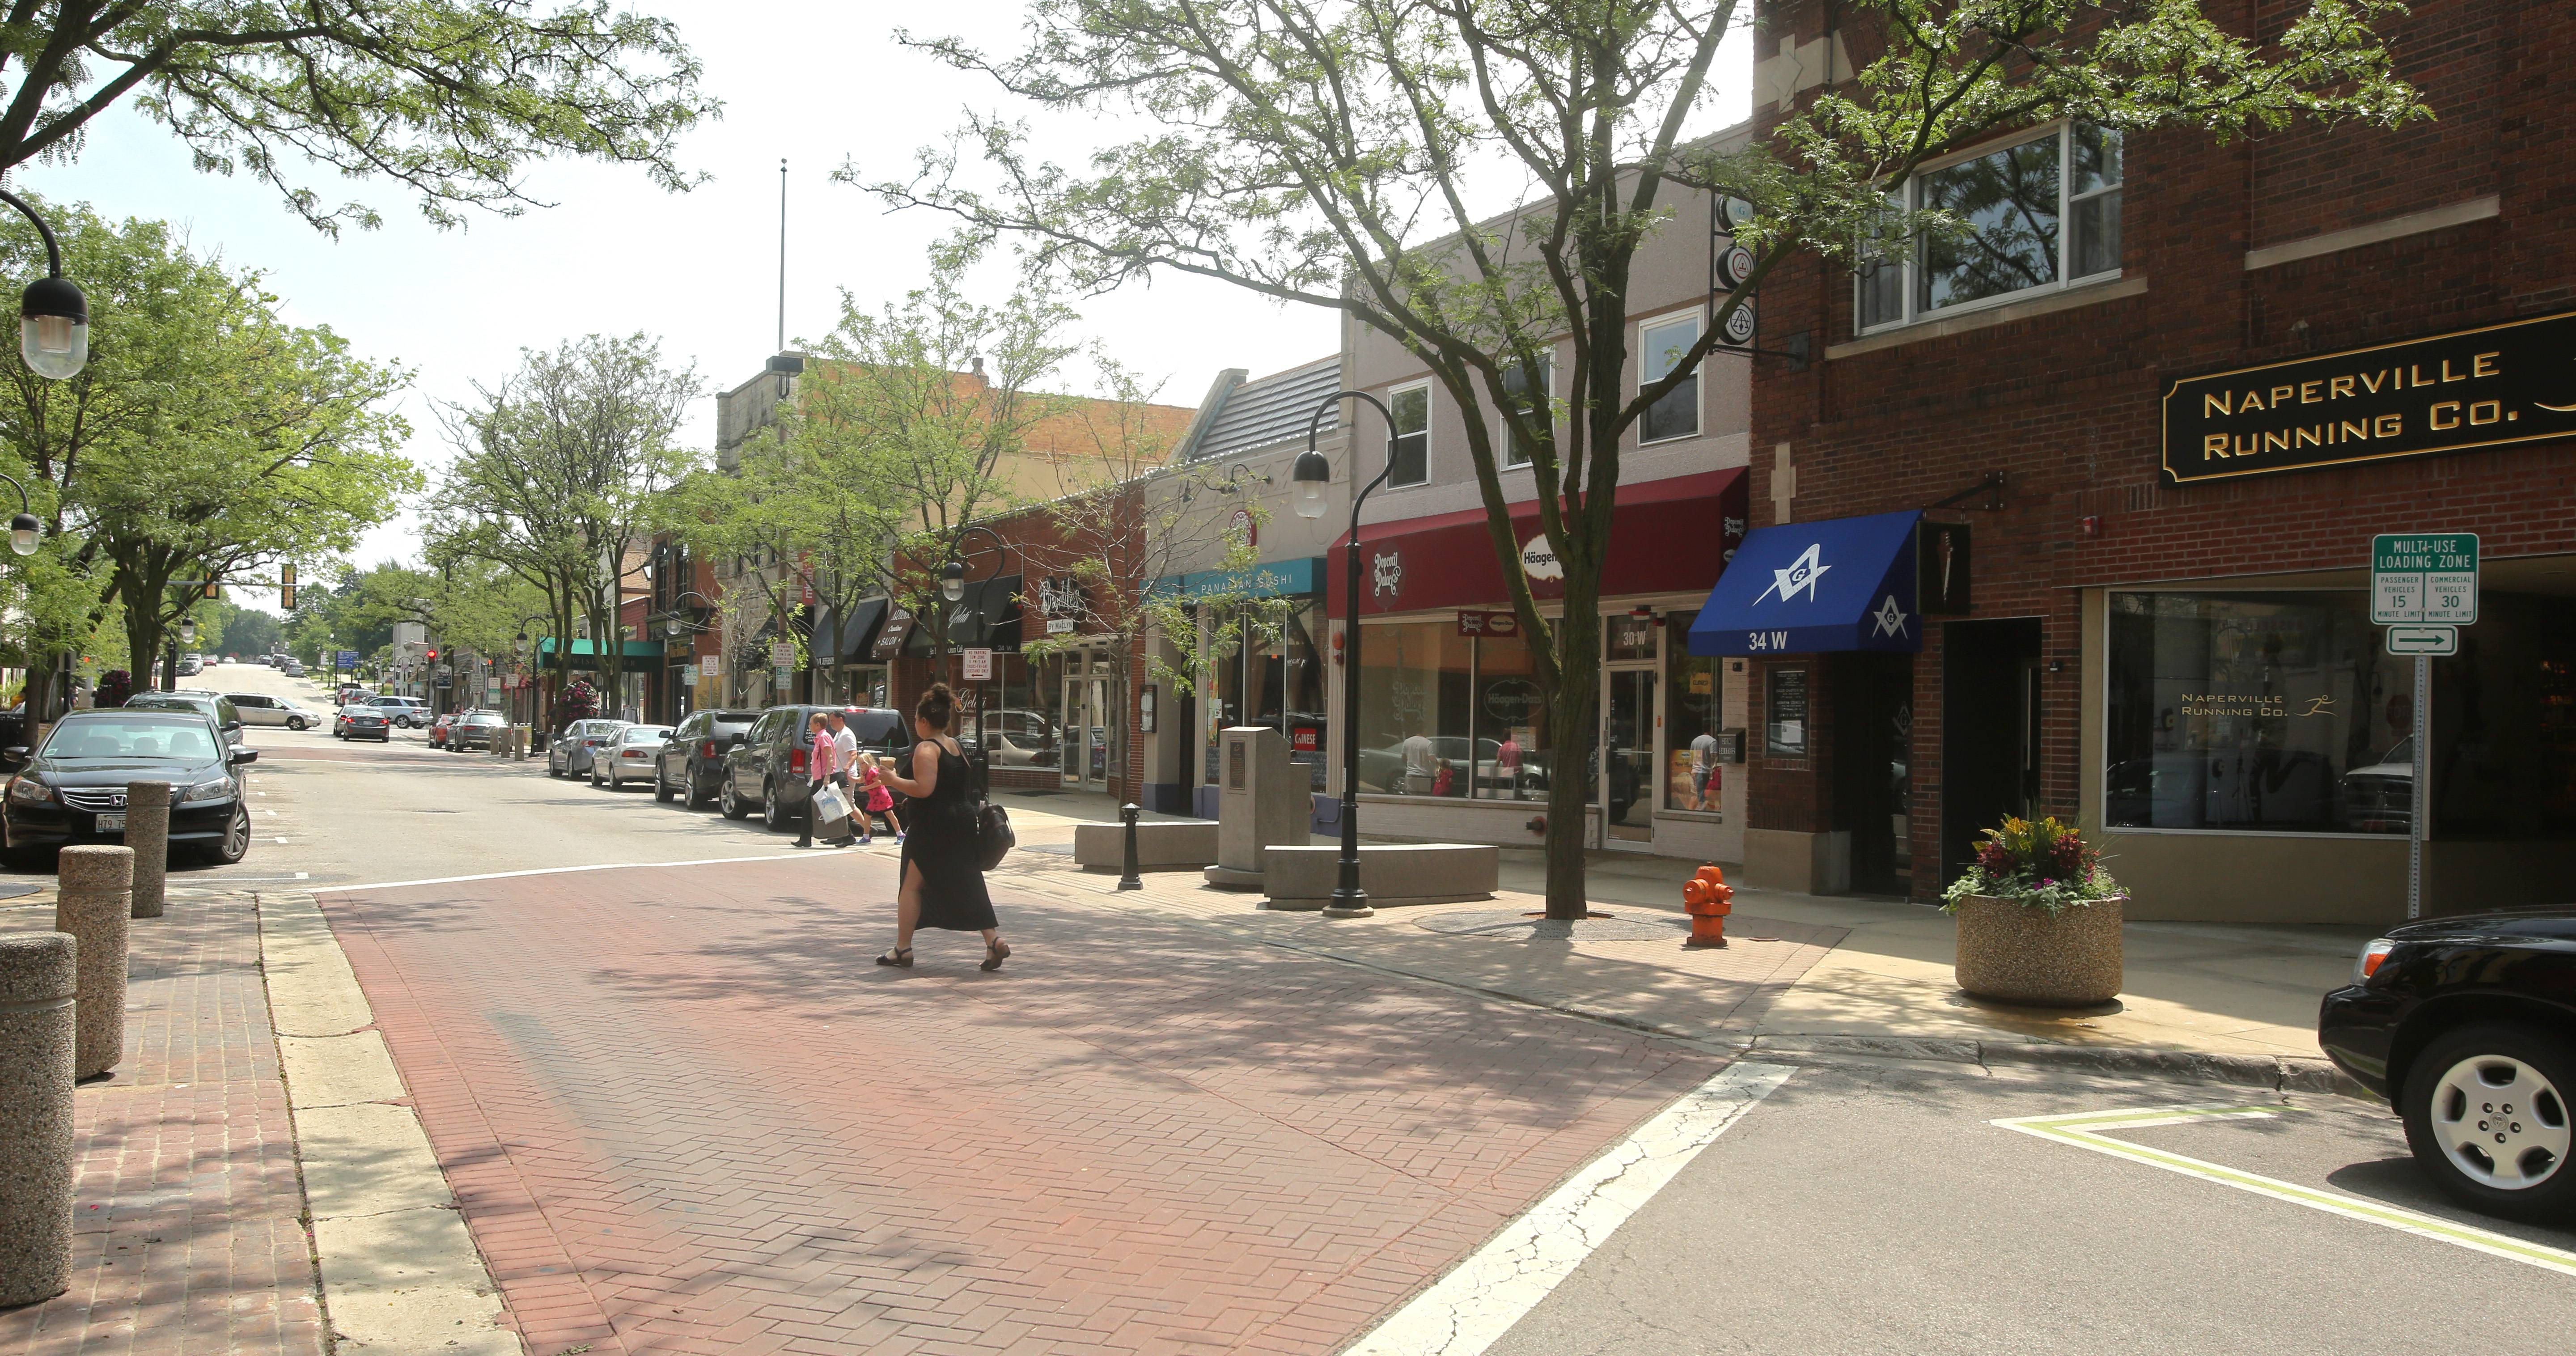 Naperville police will evaluate whether closing one-block sections of Jefferson, seen here, and Jackson avenues between Washington and Main streets downtown will help pedestrian safety when bars close.